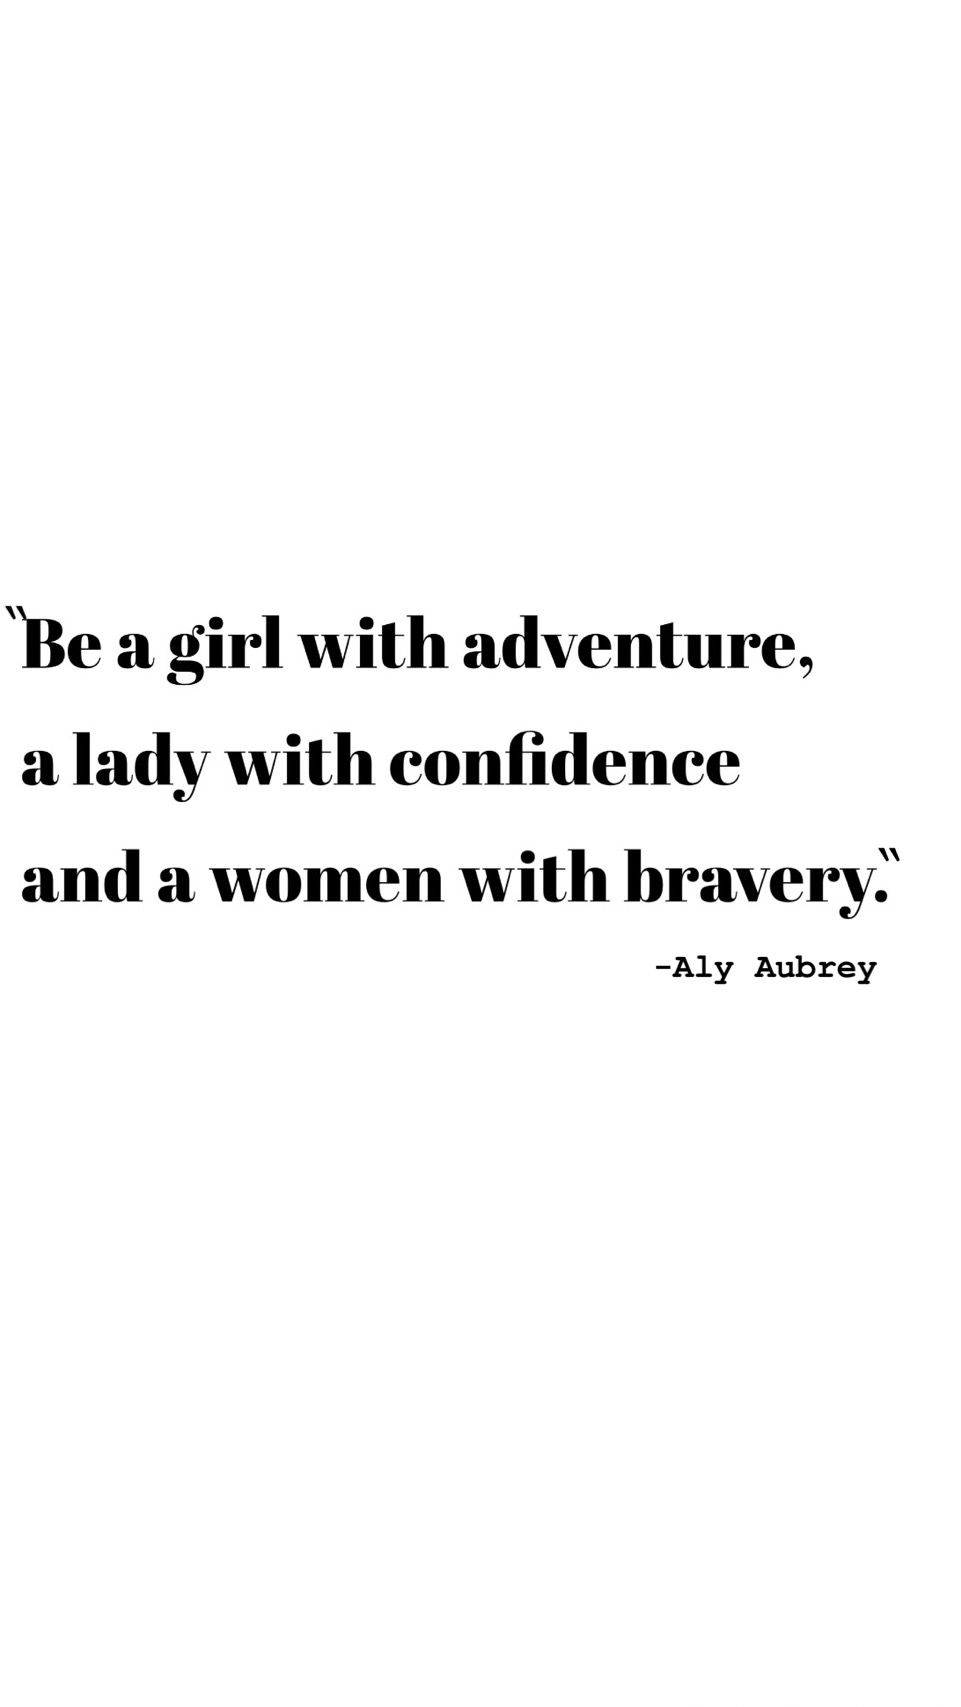 Be a girl with adventure, a lady with confidence, and a ...